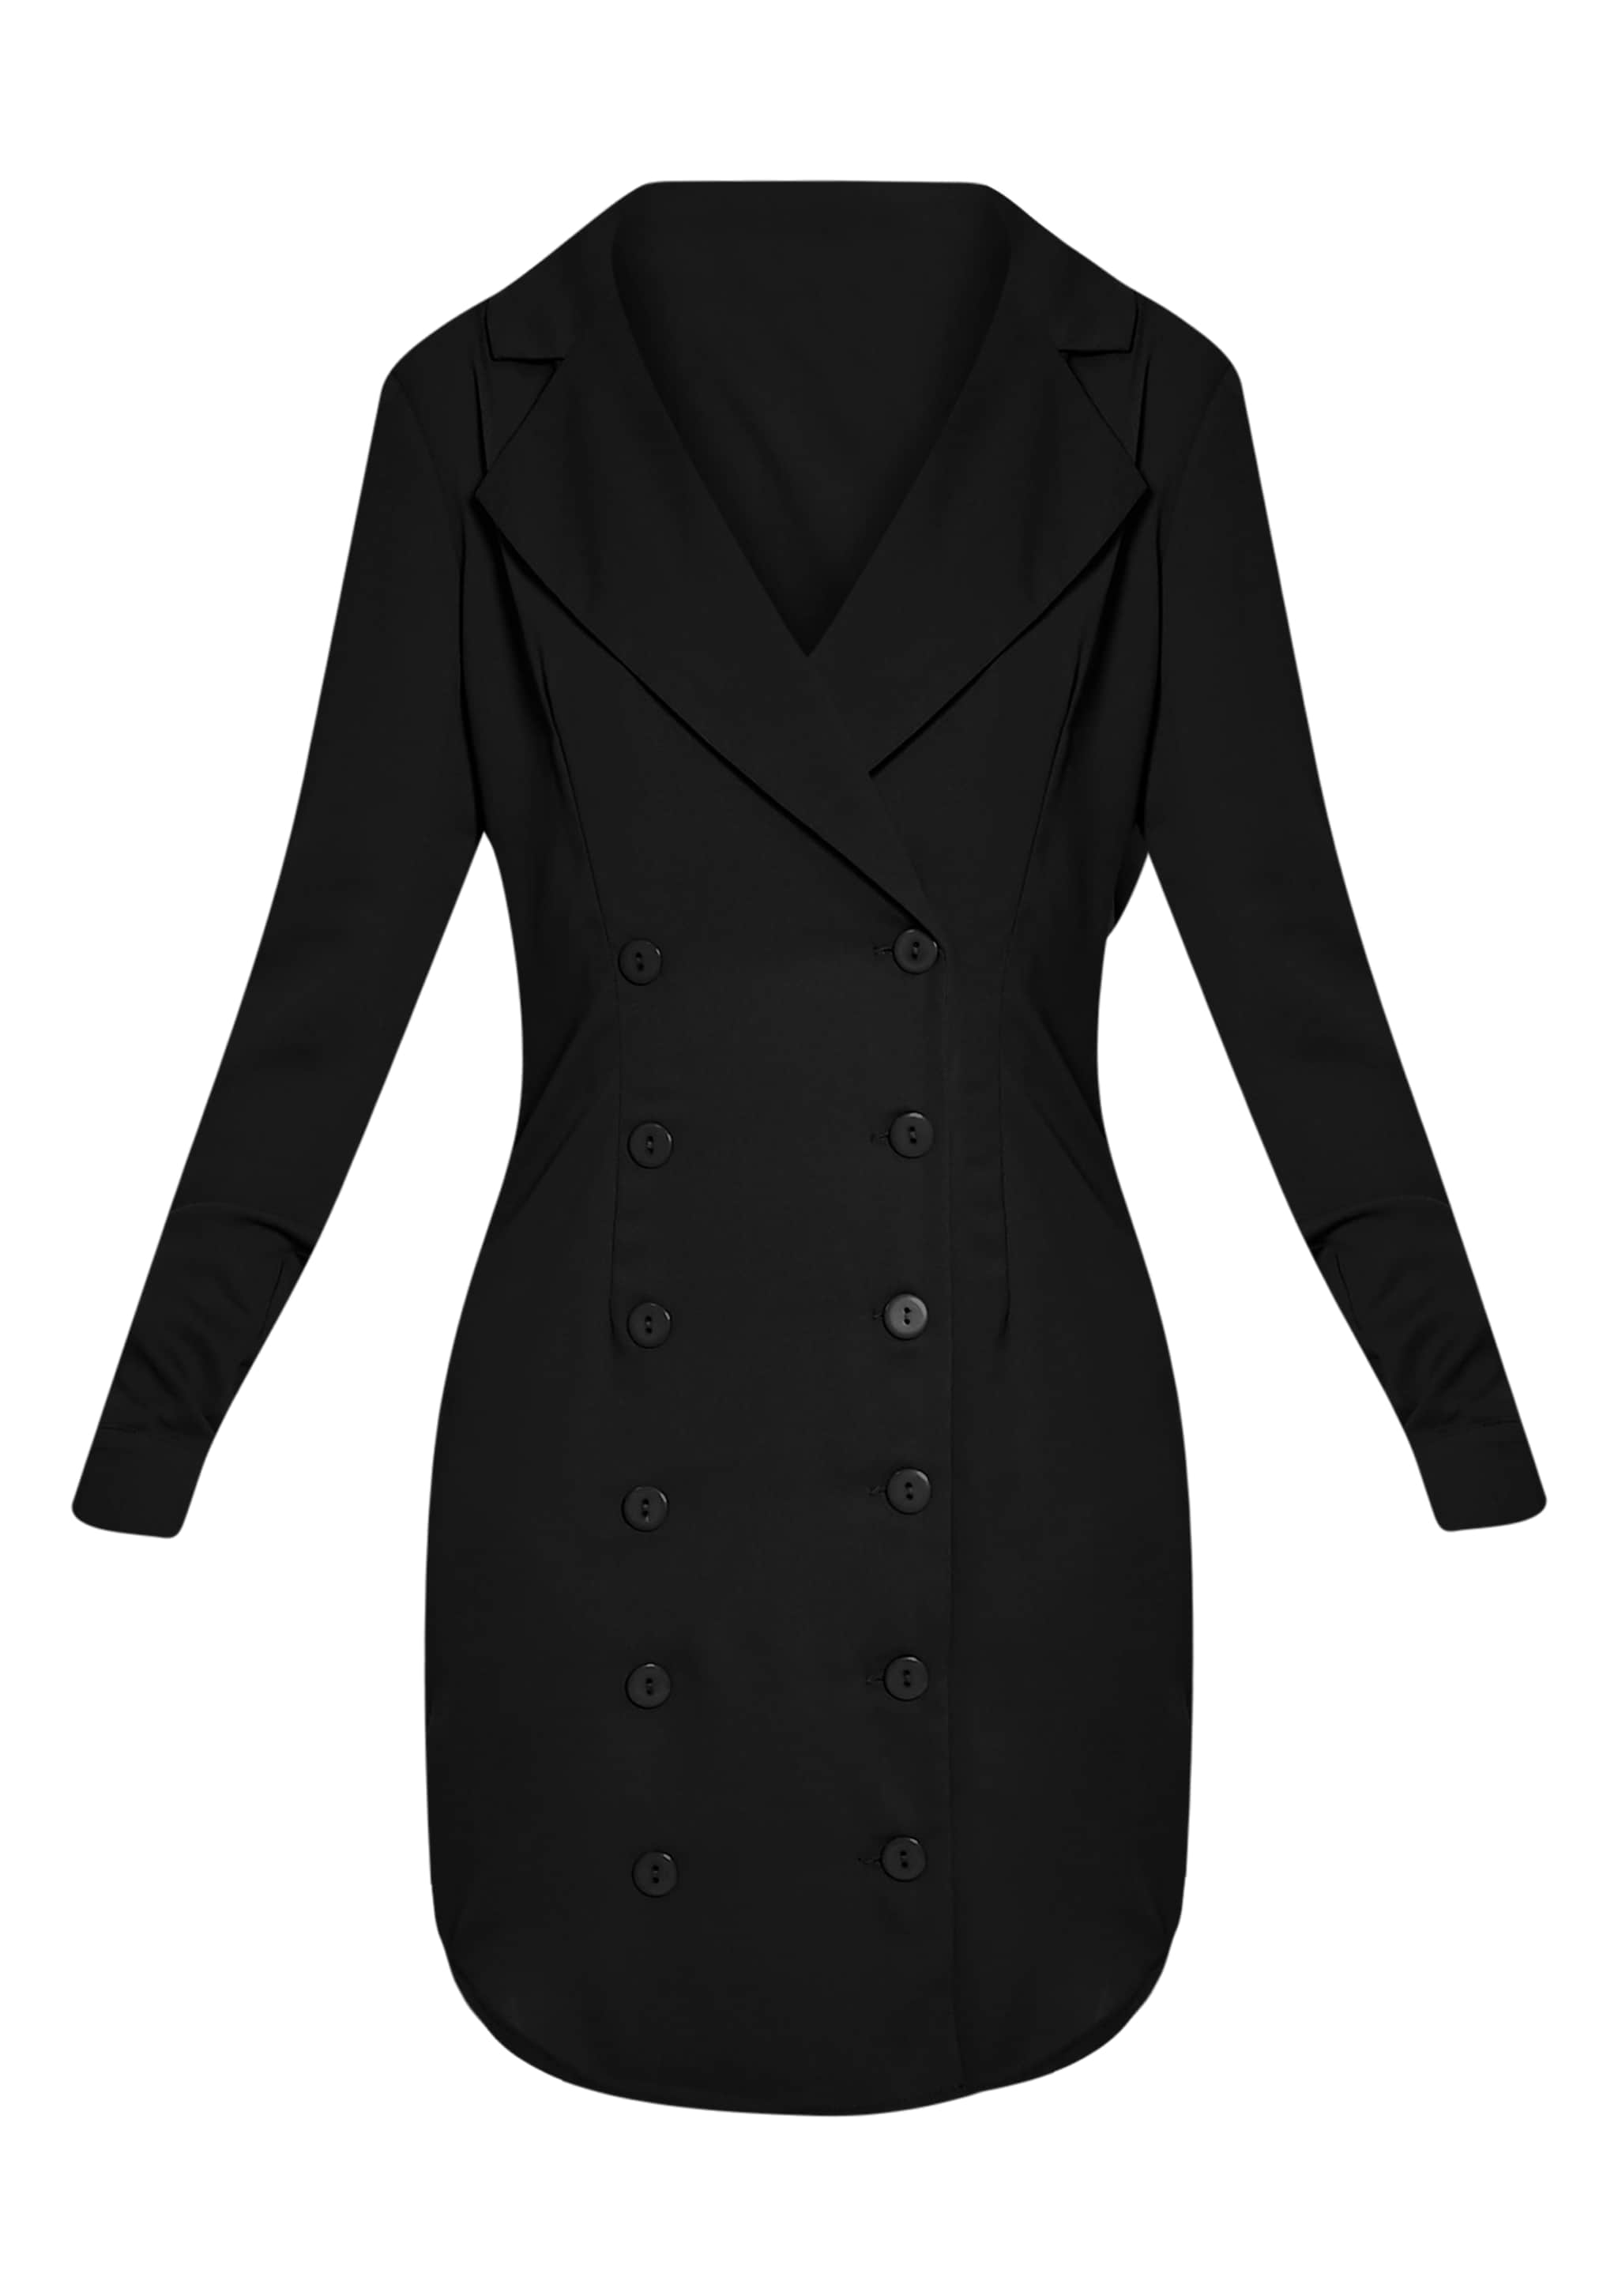 Lucah Black Double Breasted Blazer Dress 3